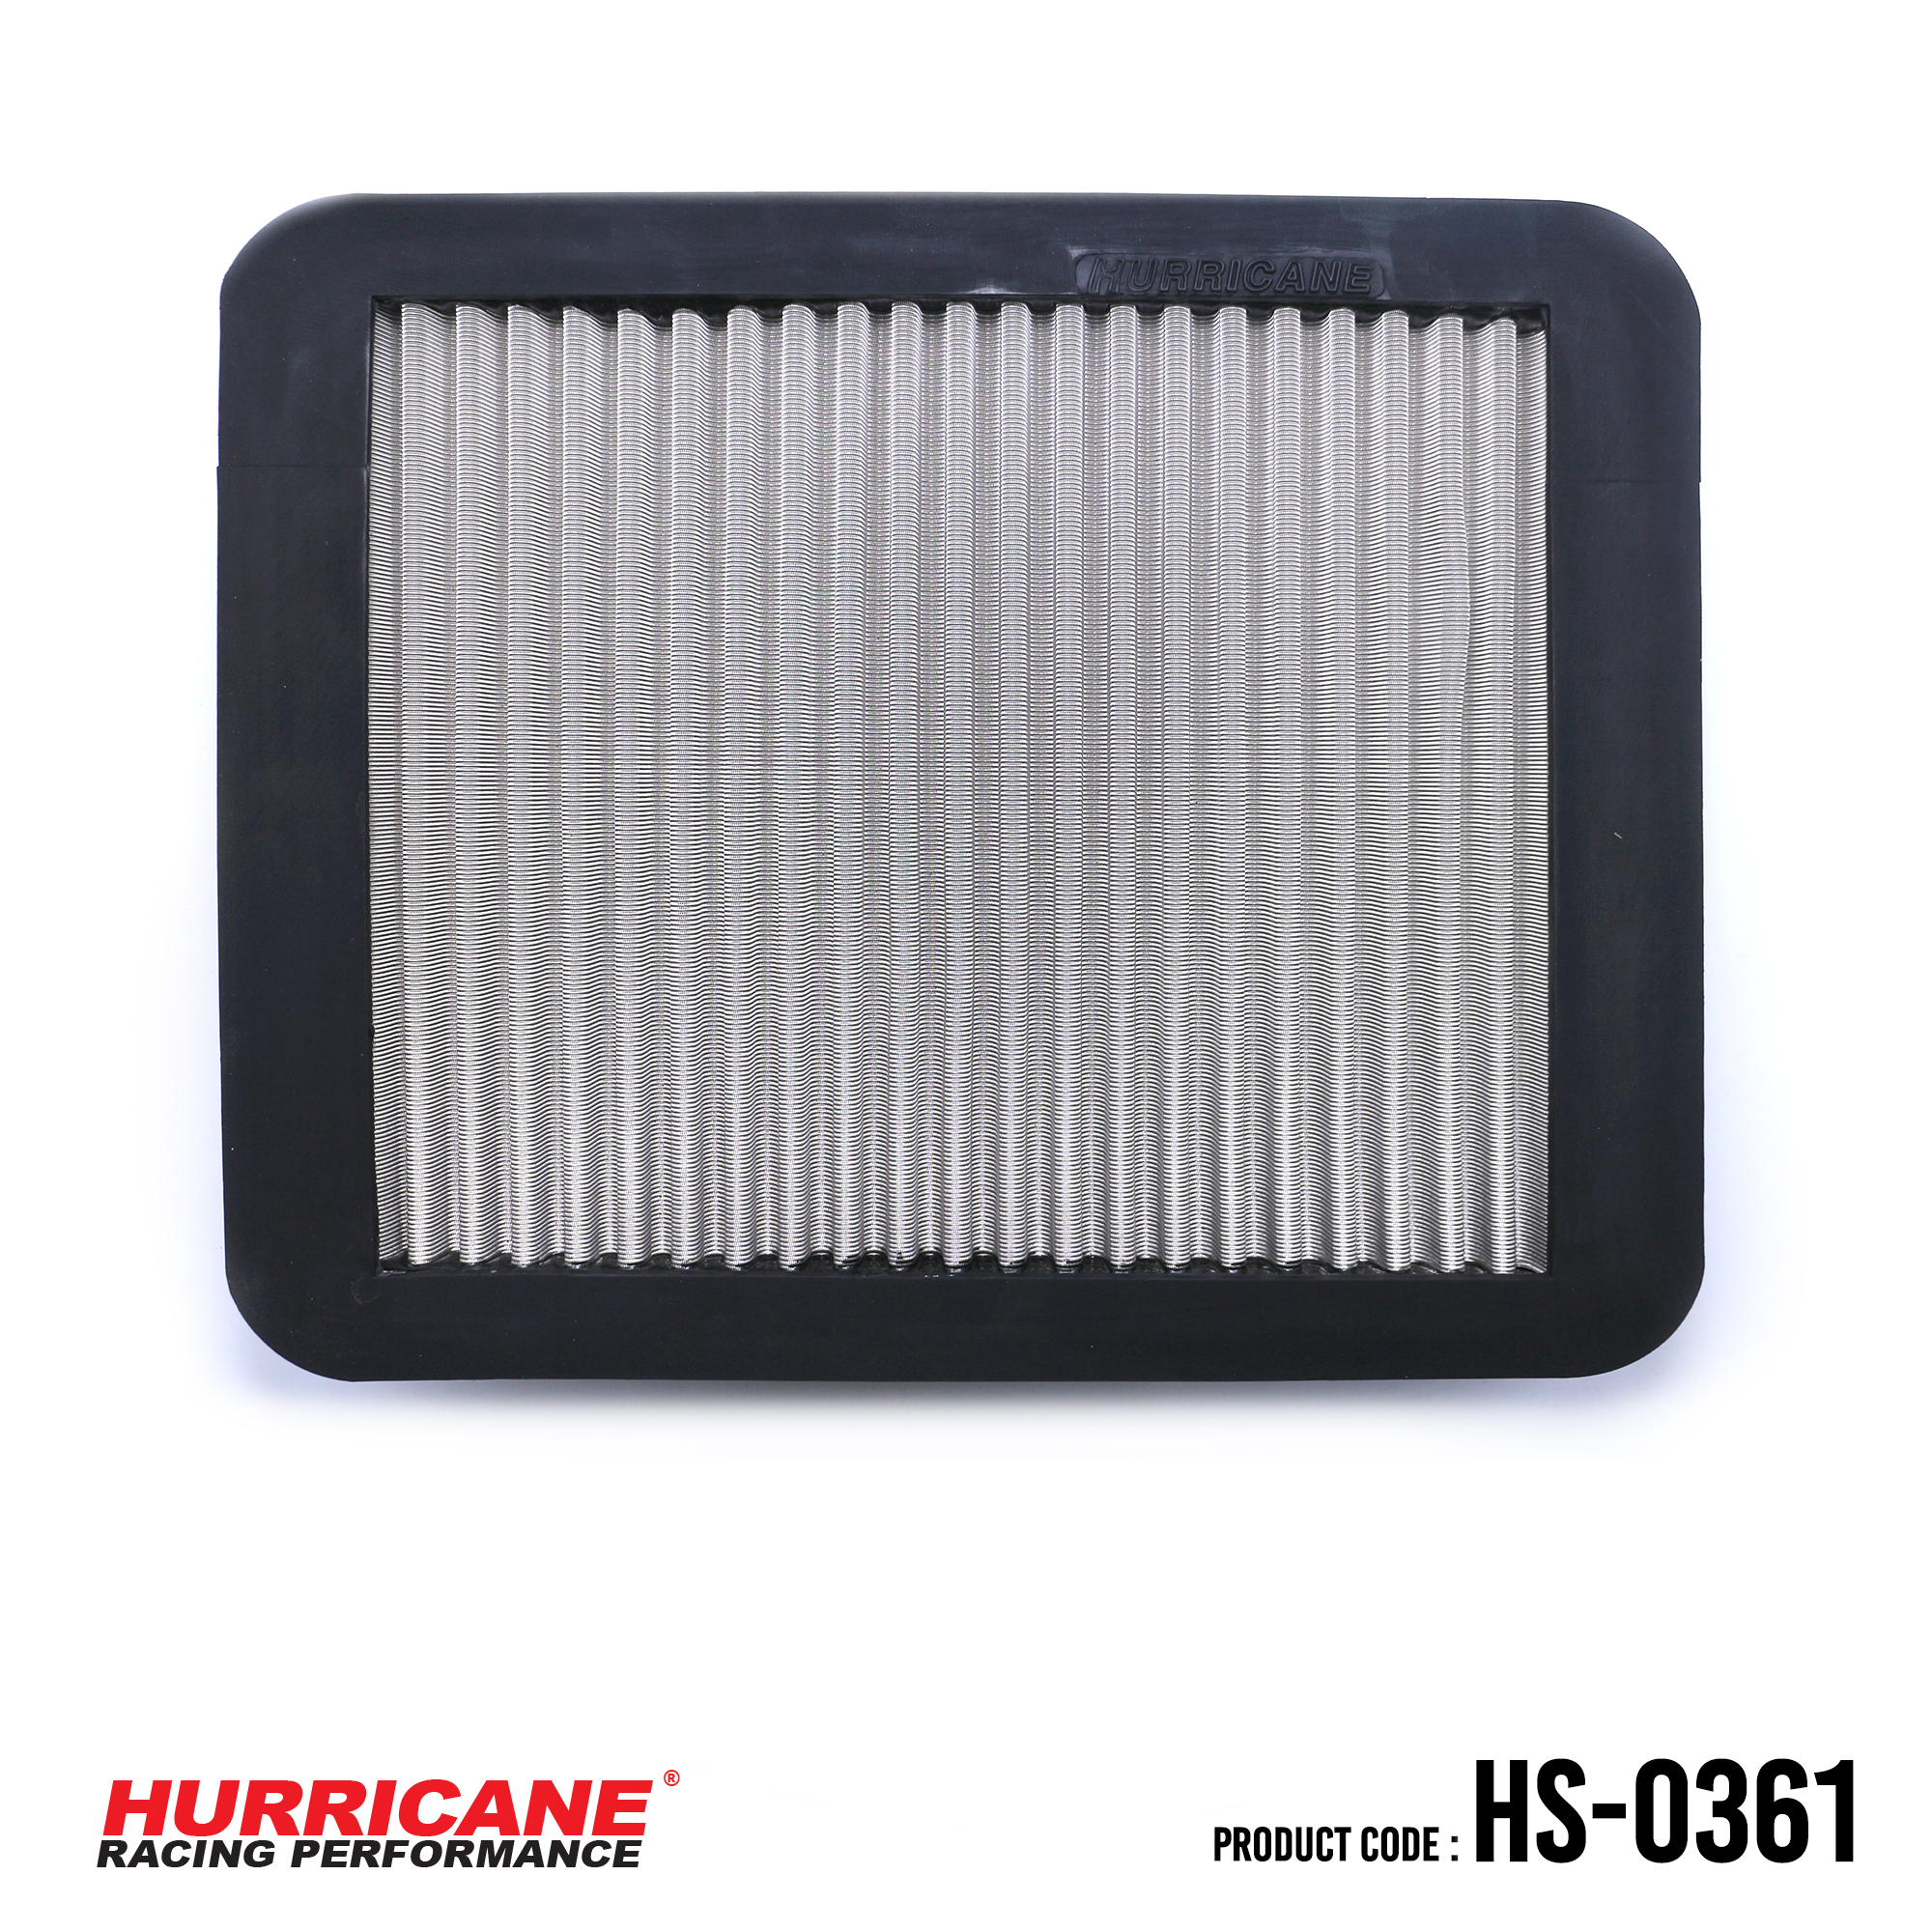 HURRICANE STAINLESS STEEL AIR FILTER FOR HS-0361 Toyota